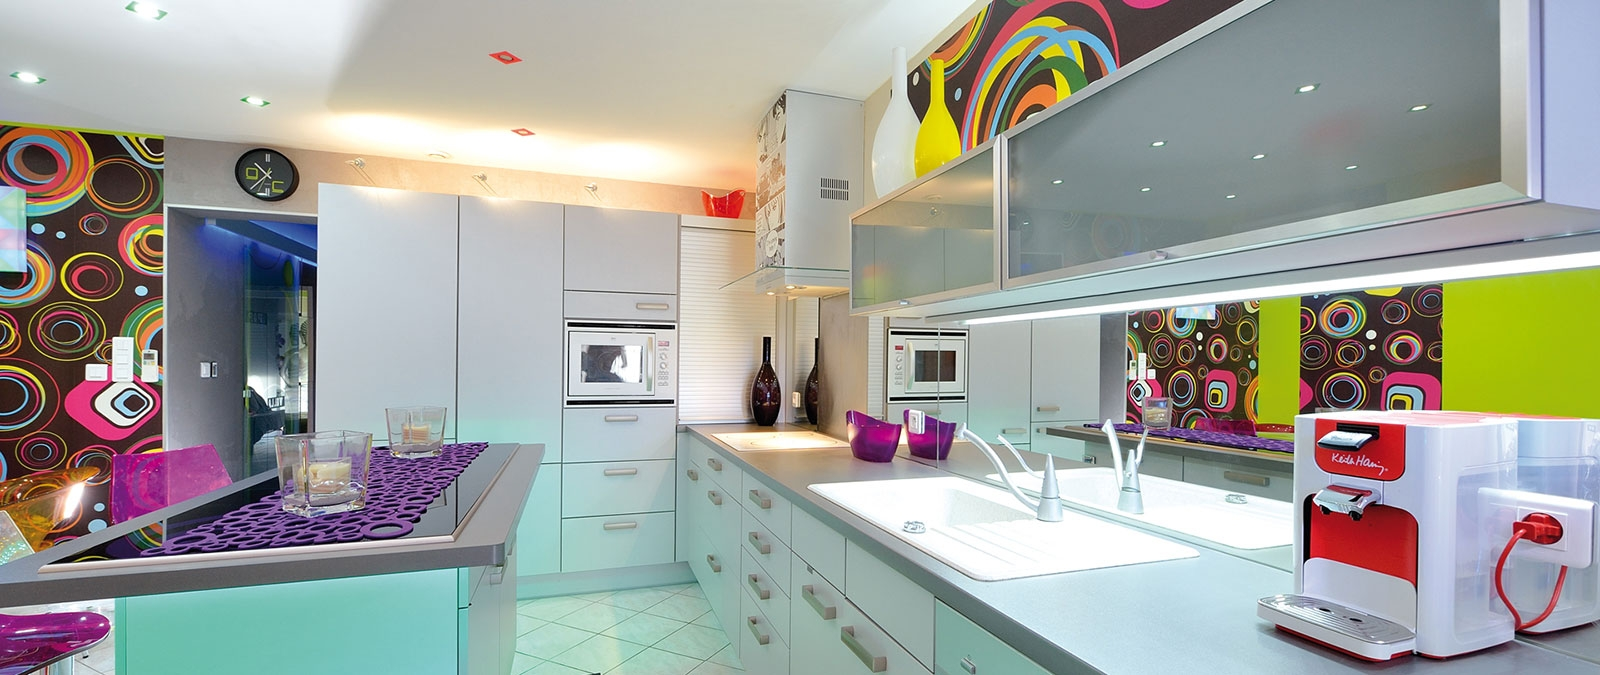 Pop naturist villa equipped kitchen